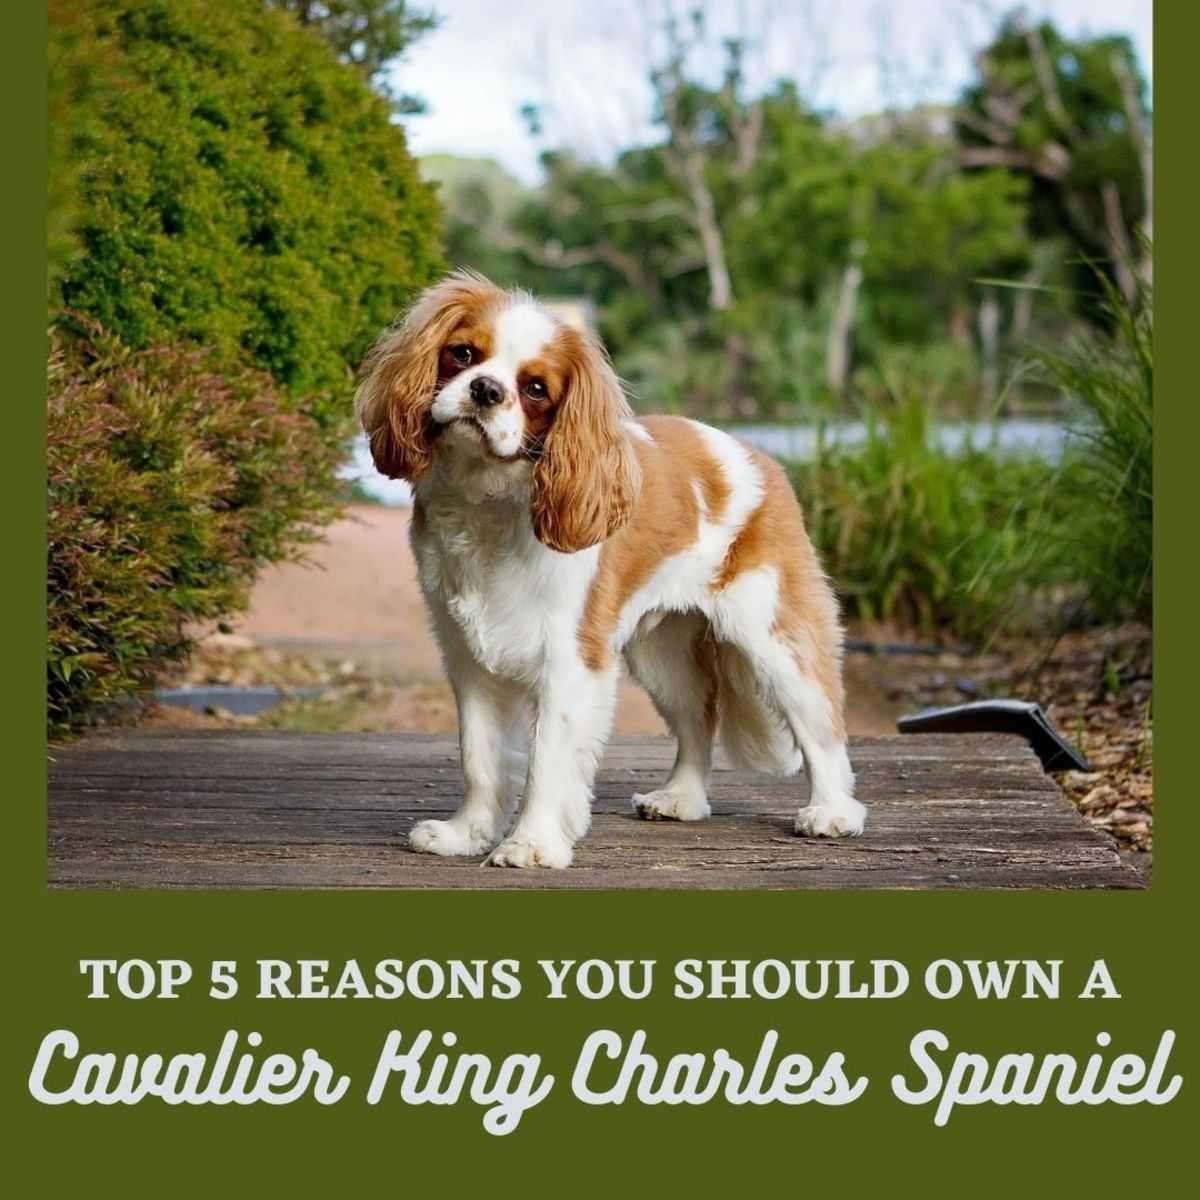 Why you should consider getting a Cavalier King Charles Spaniel